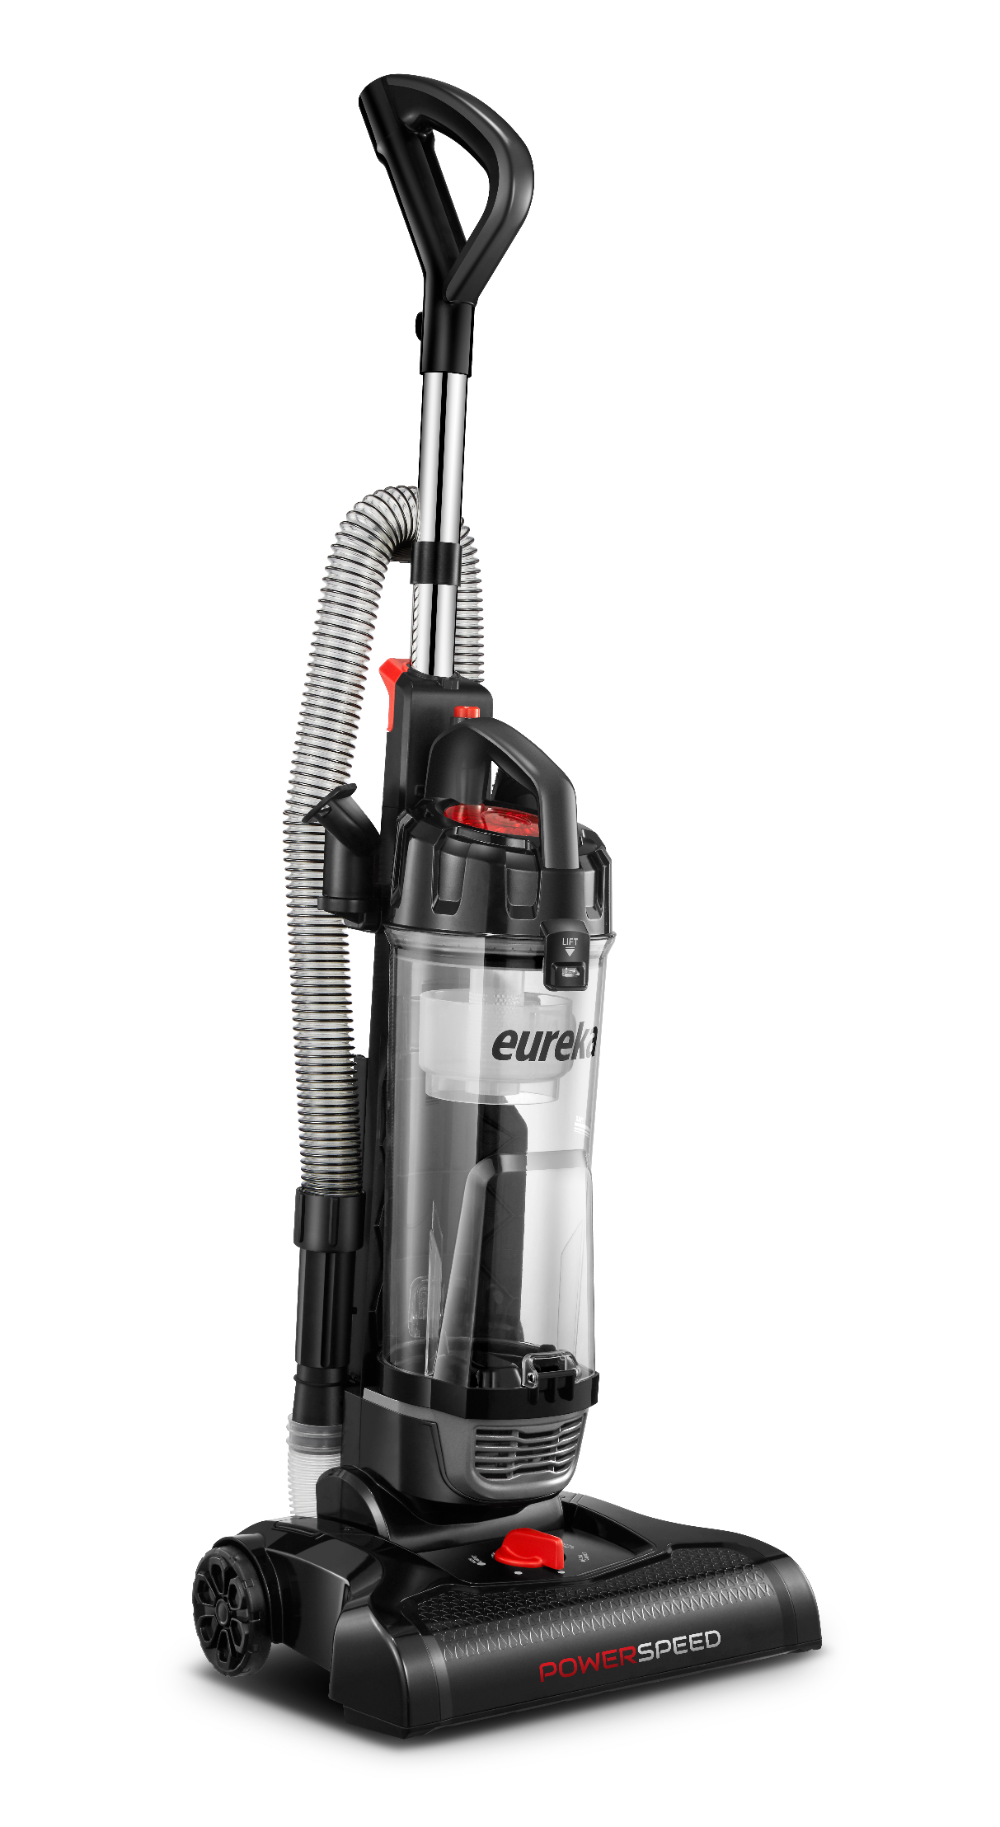 Eureka PowerSpeed Lightweight Upright Vacuum, NEU180